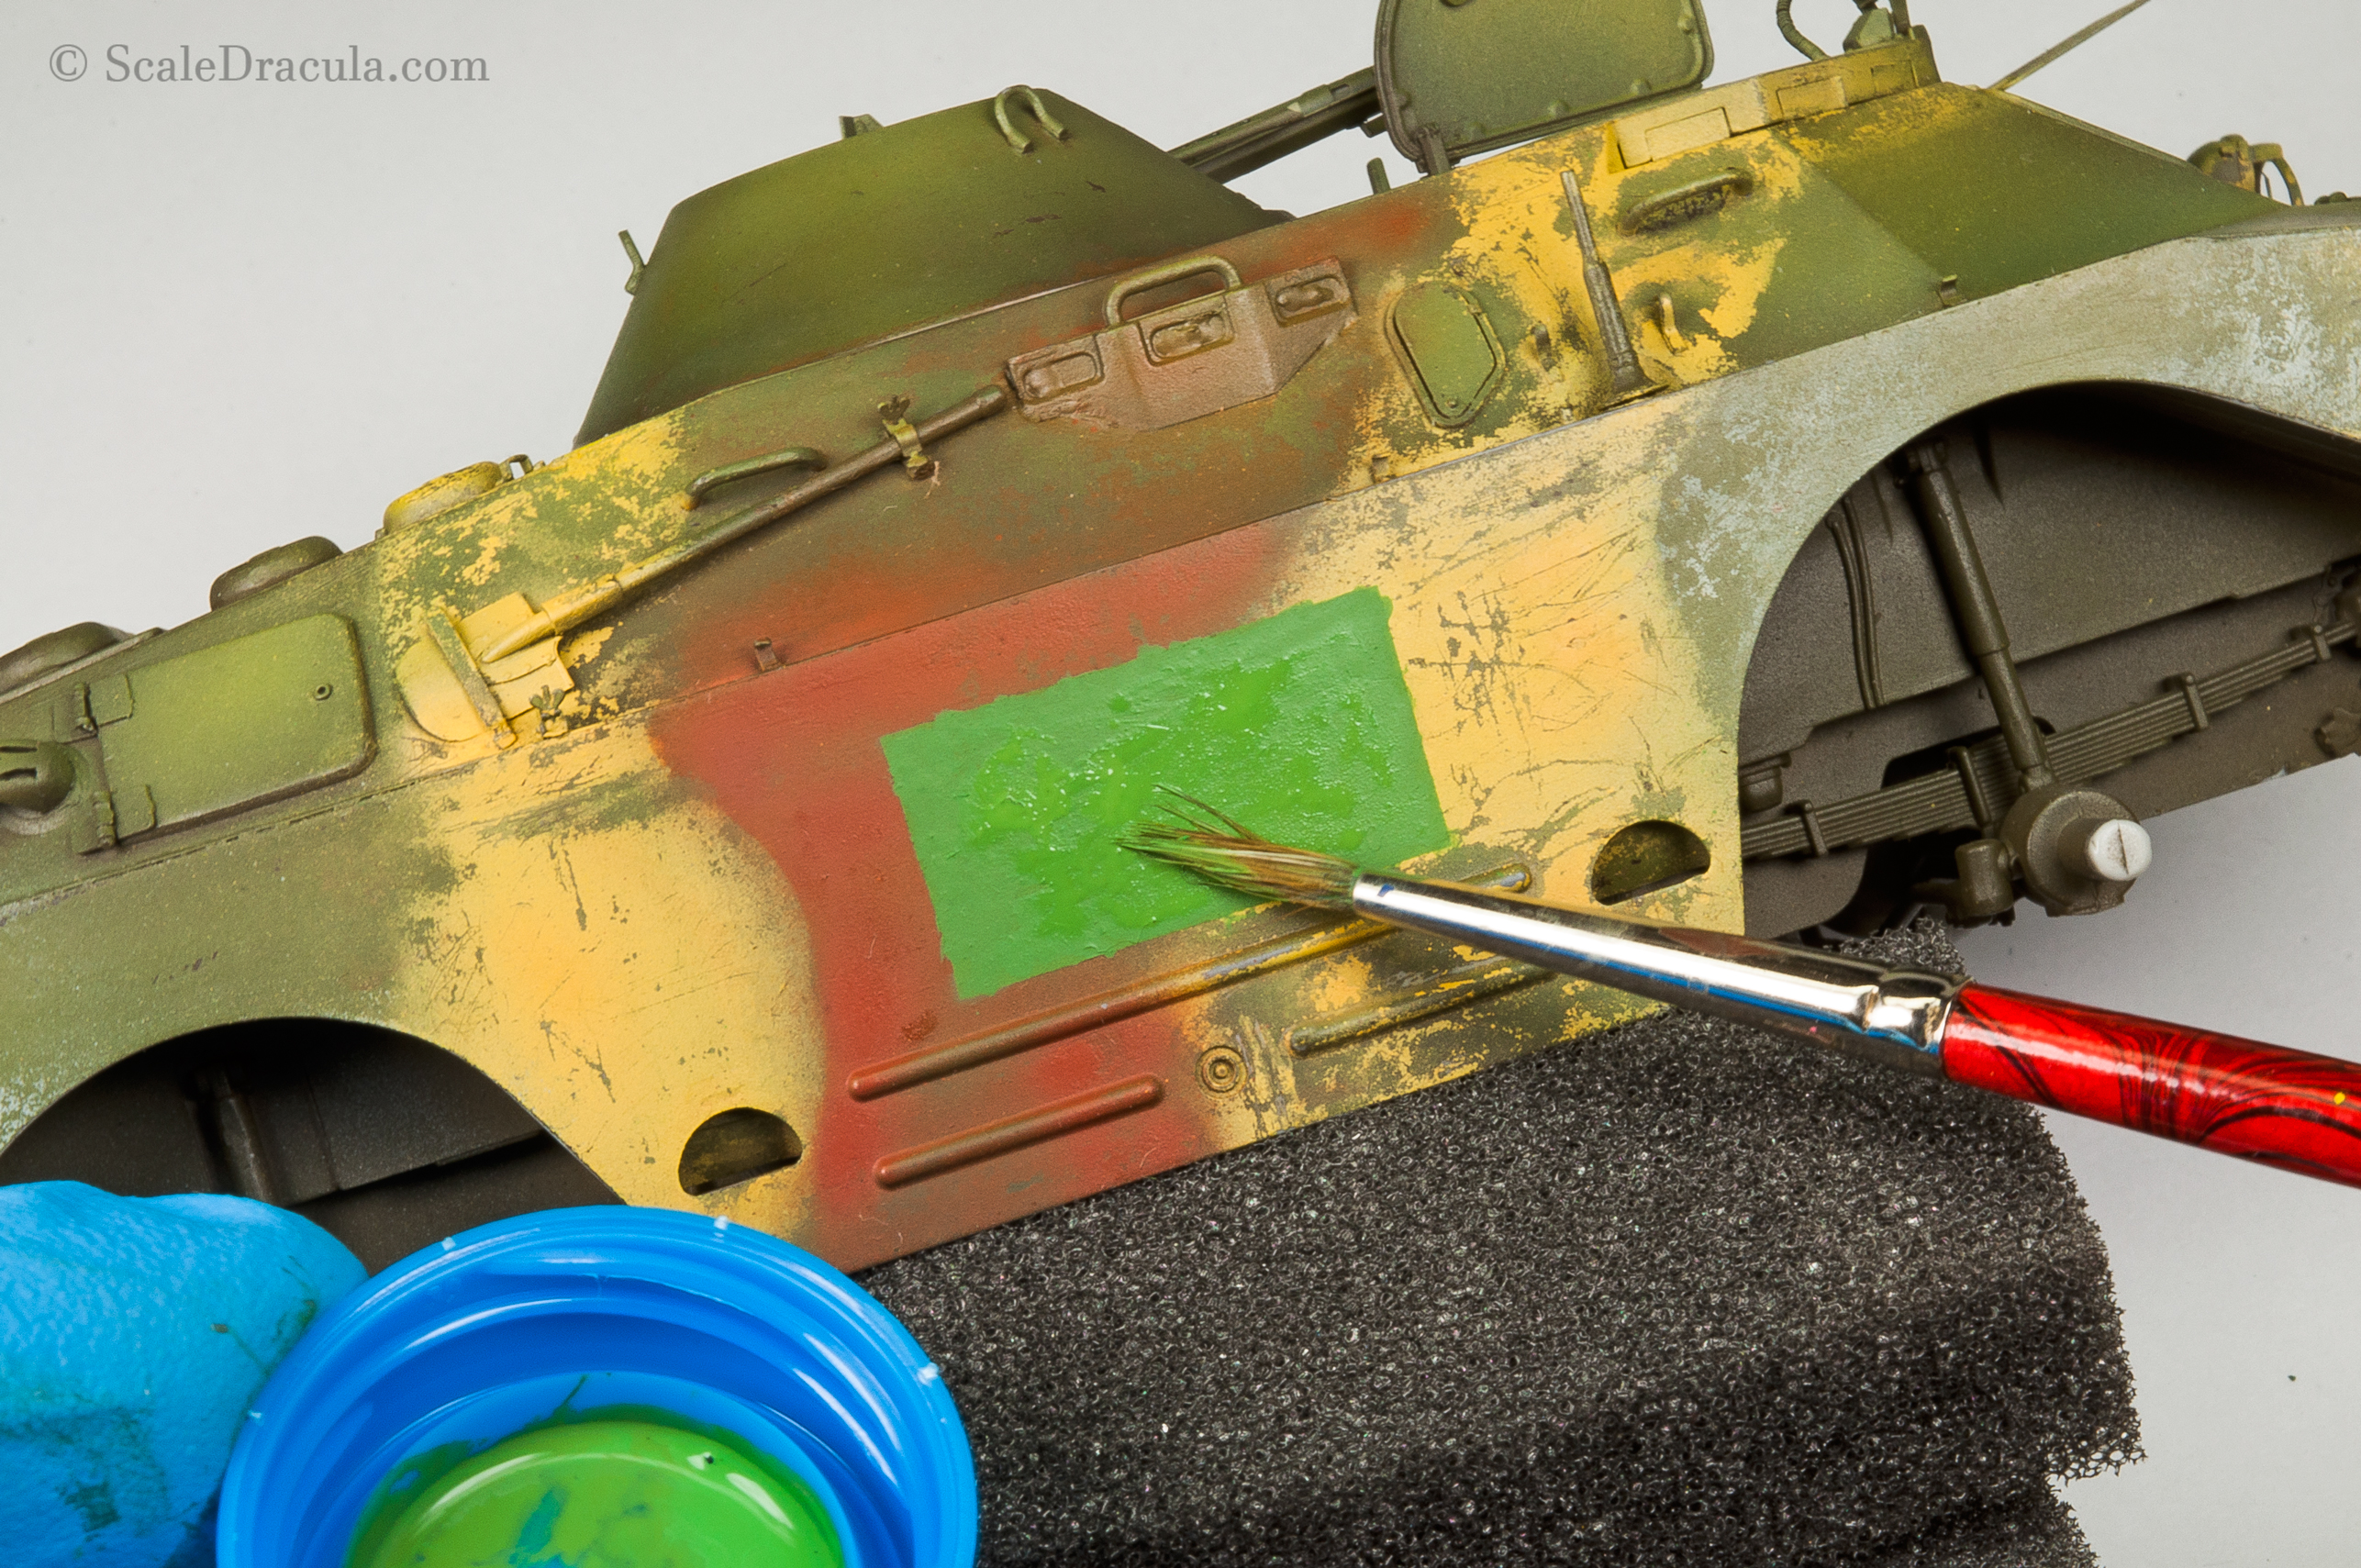 Acrylic paint thickened with talcum powder, BRDM-2 by Trumpeter